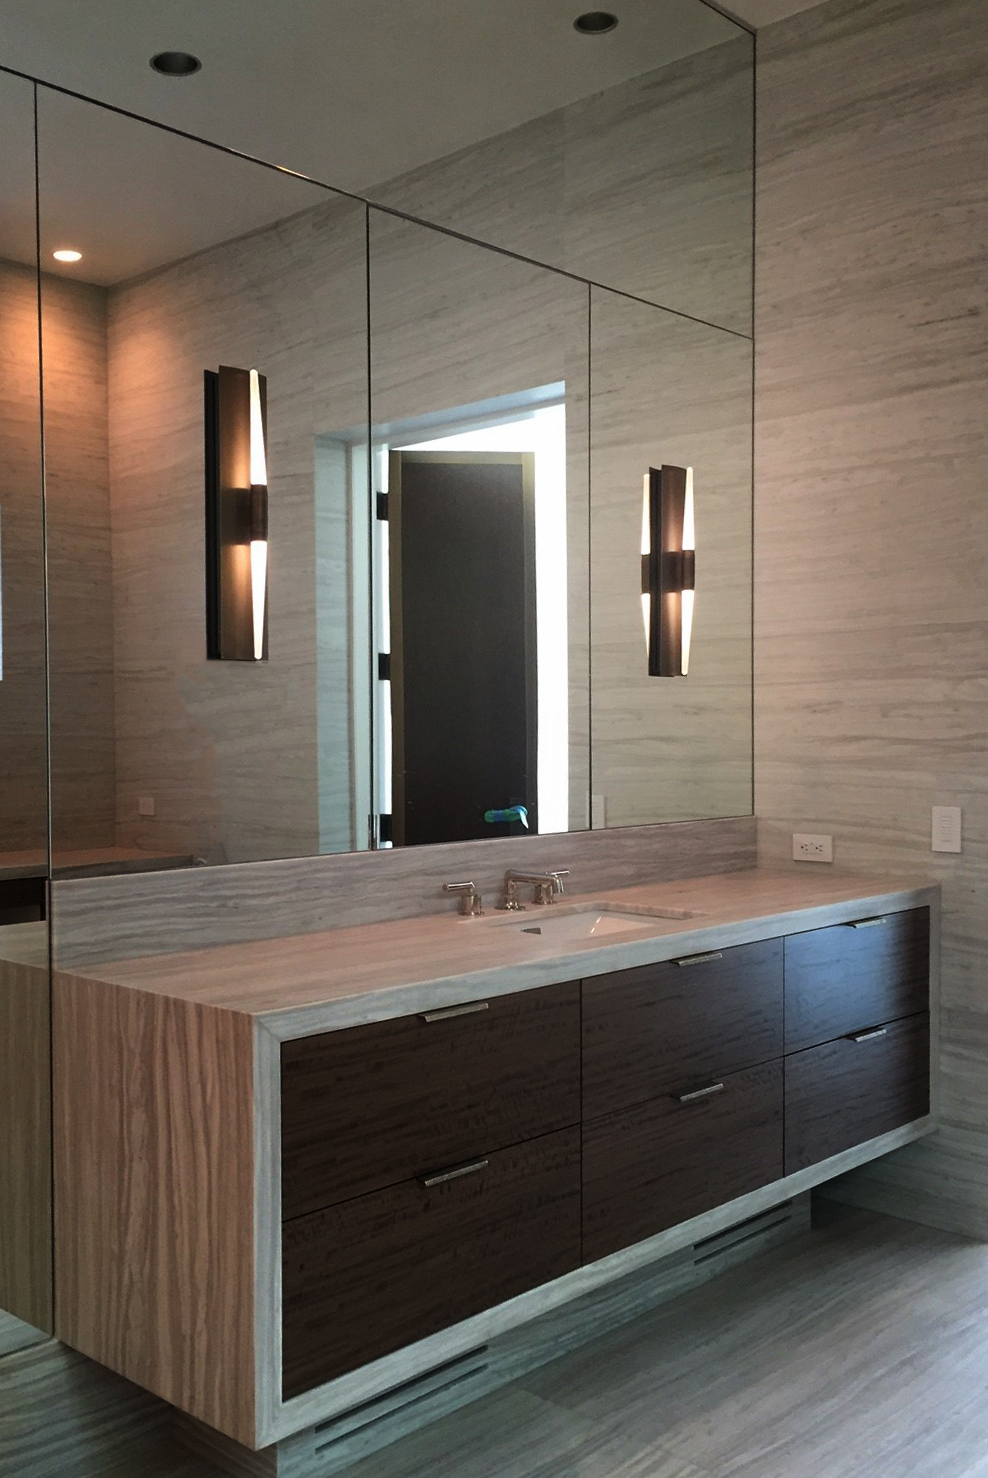 This bathroom by  Laura Lee Clark Interior Design  features the Icicle Wand Sconce in Blackened Brass with etched glass.